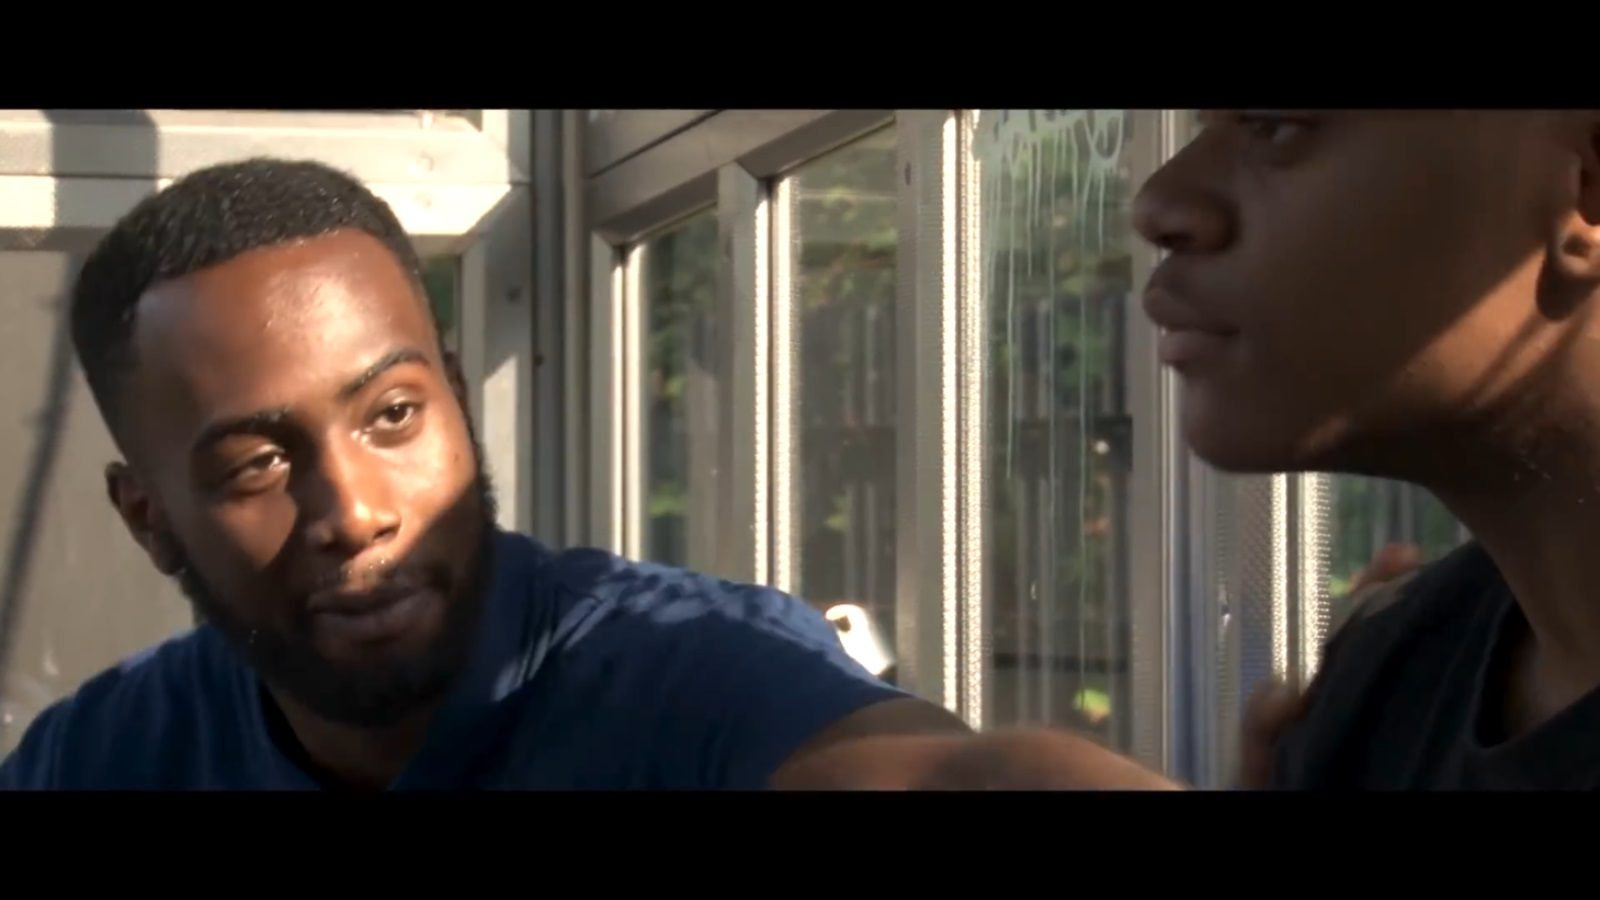 Still from Beat N' Delete short film containing actors Rashaun Wayne and Joe Bikuta